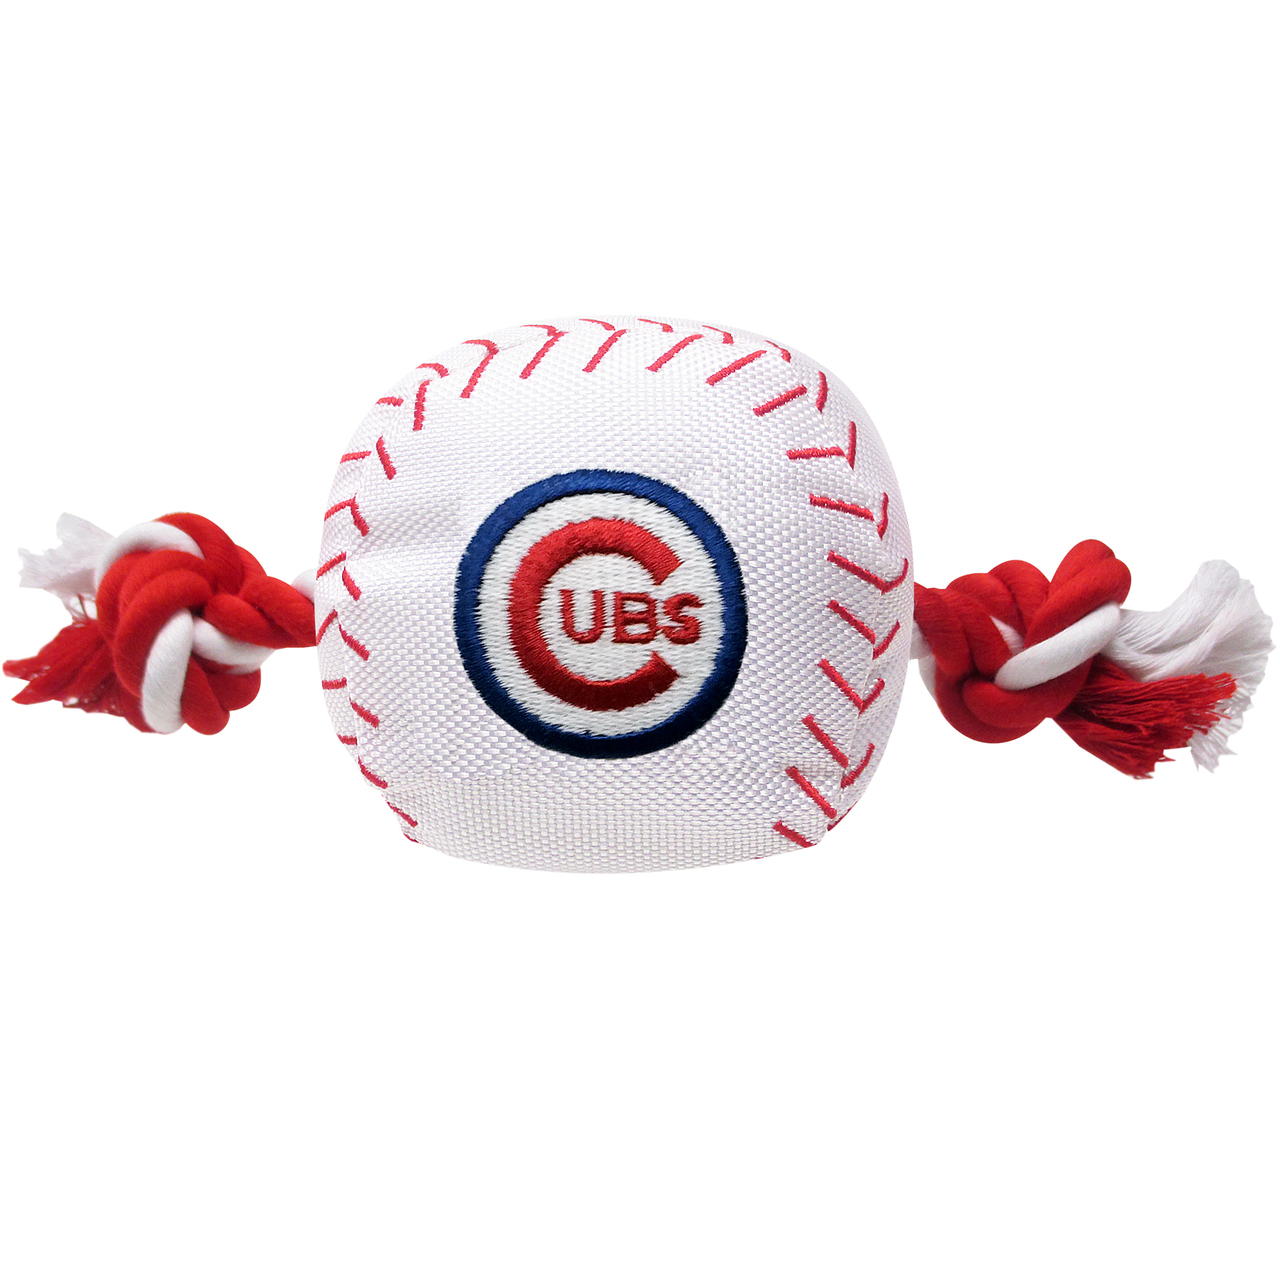 Pets First Chicago Cubs Nylon Rope Baseball Squeaker Dog Toy